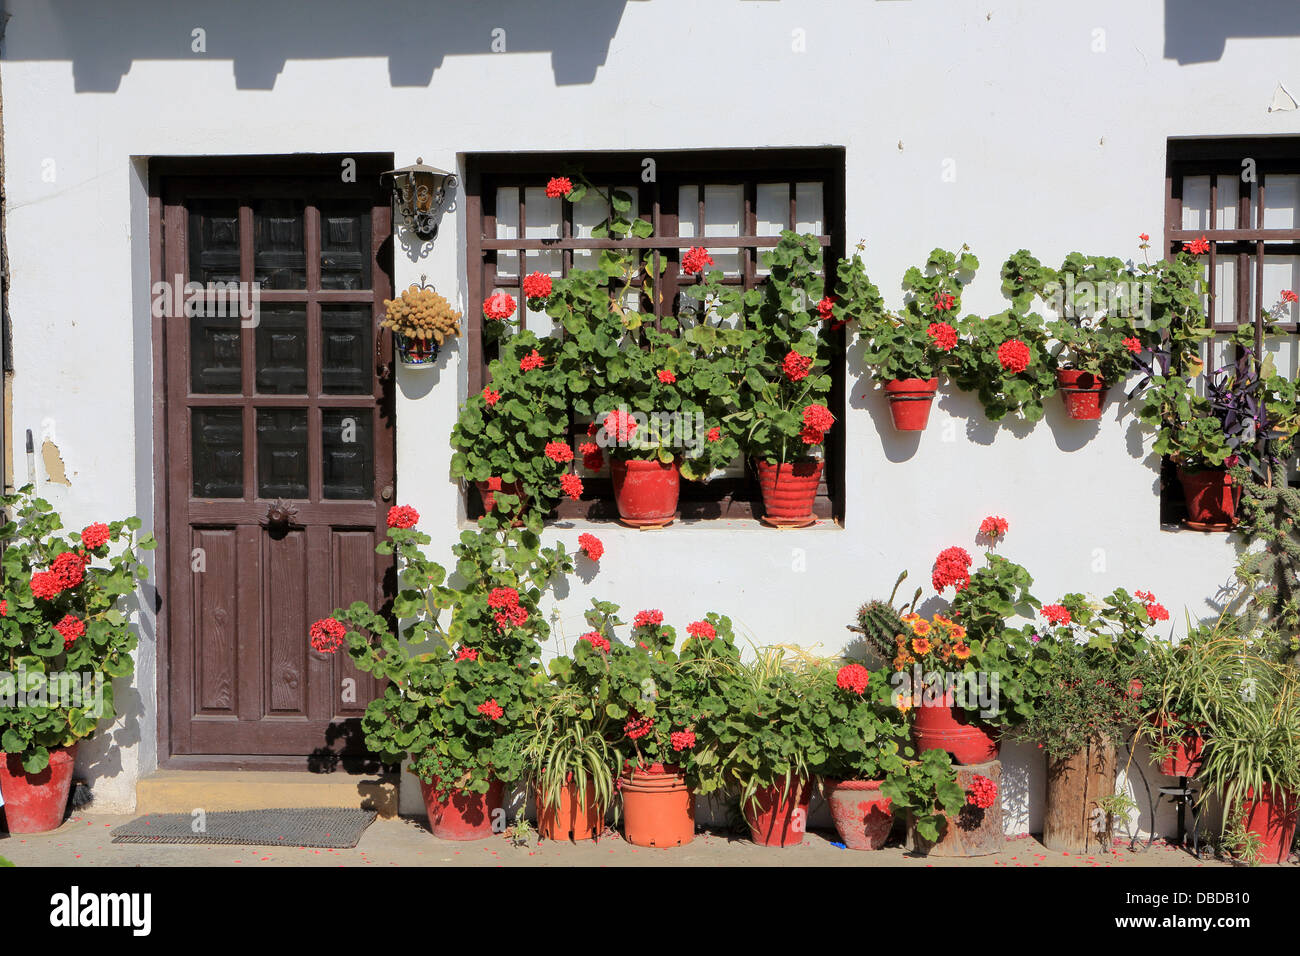 Quaint garden in front of cottage with flowering red pot plants - Stock Image